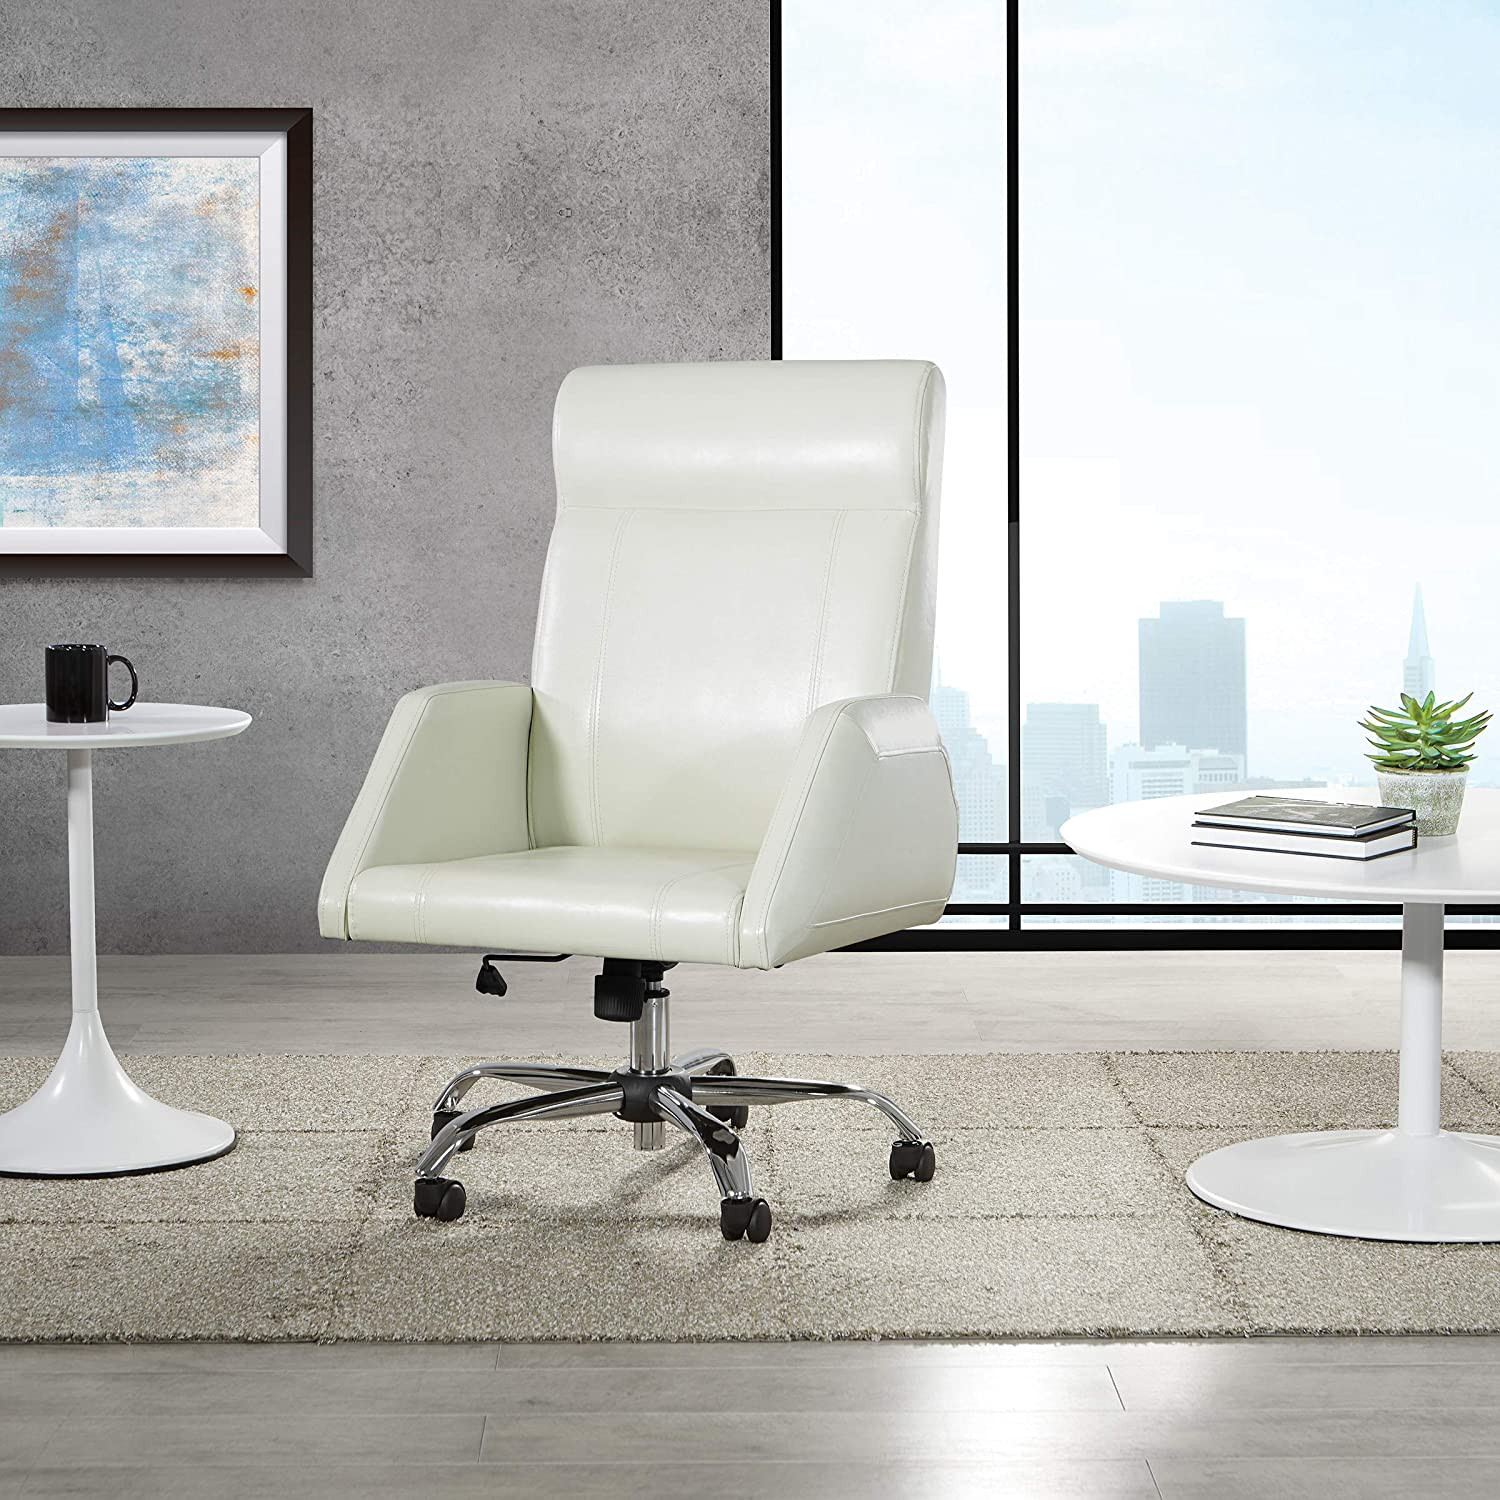 Osp Home Furnishings Rochester Executive Office Chair Cream Furniture Decor